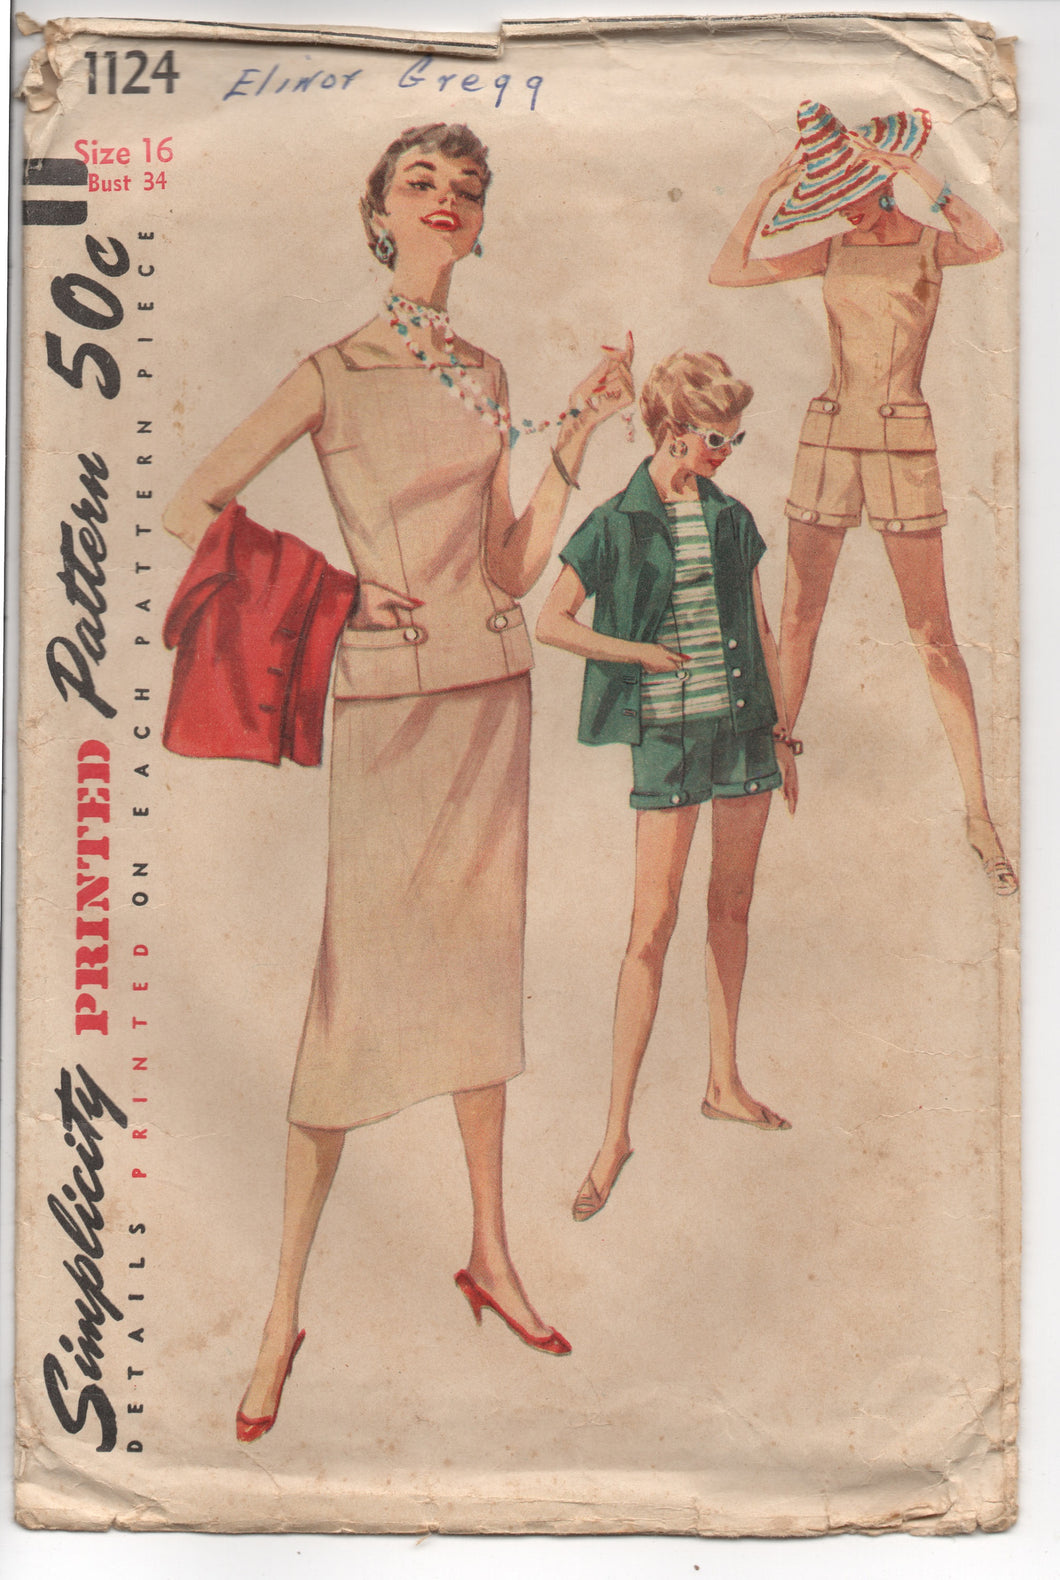 1950's Simplicity Summer Outfit with Slim Skirt, Shorts and Sleeveless Top Pattern - Bust 34